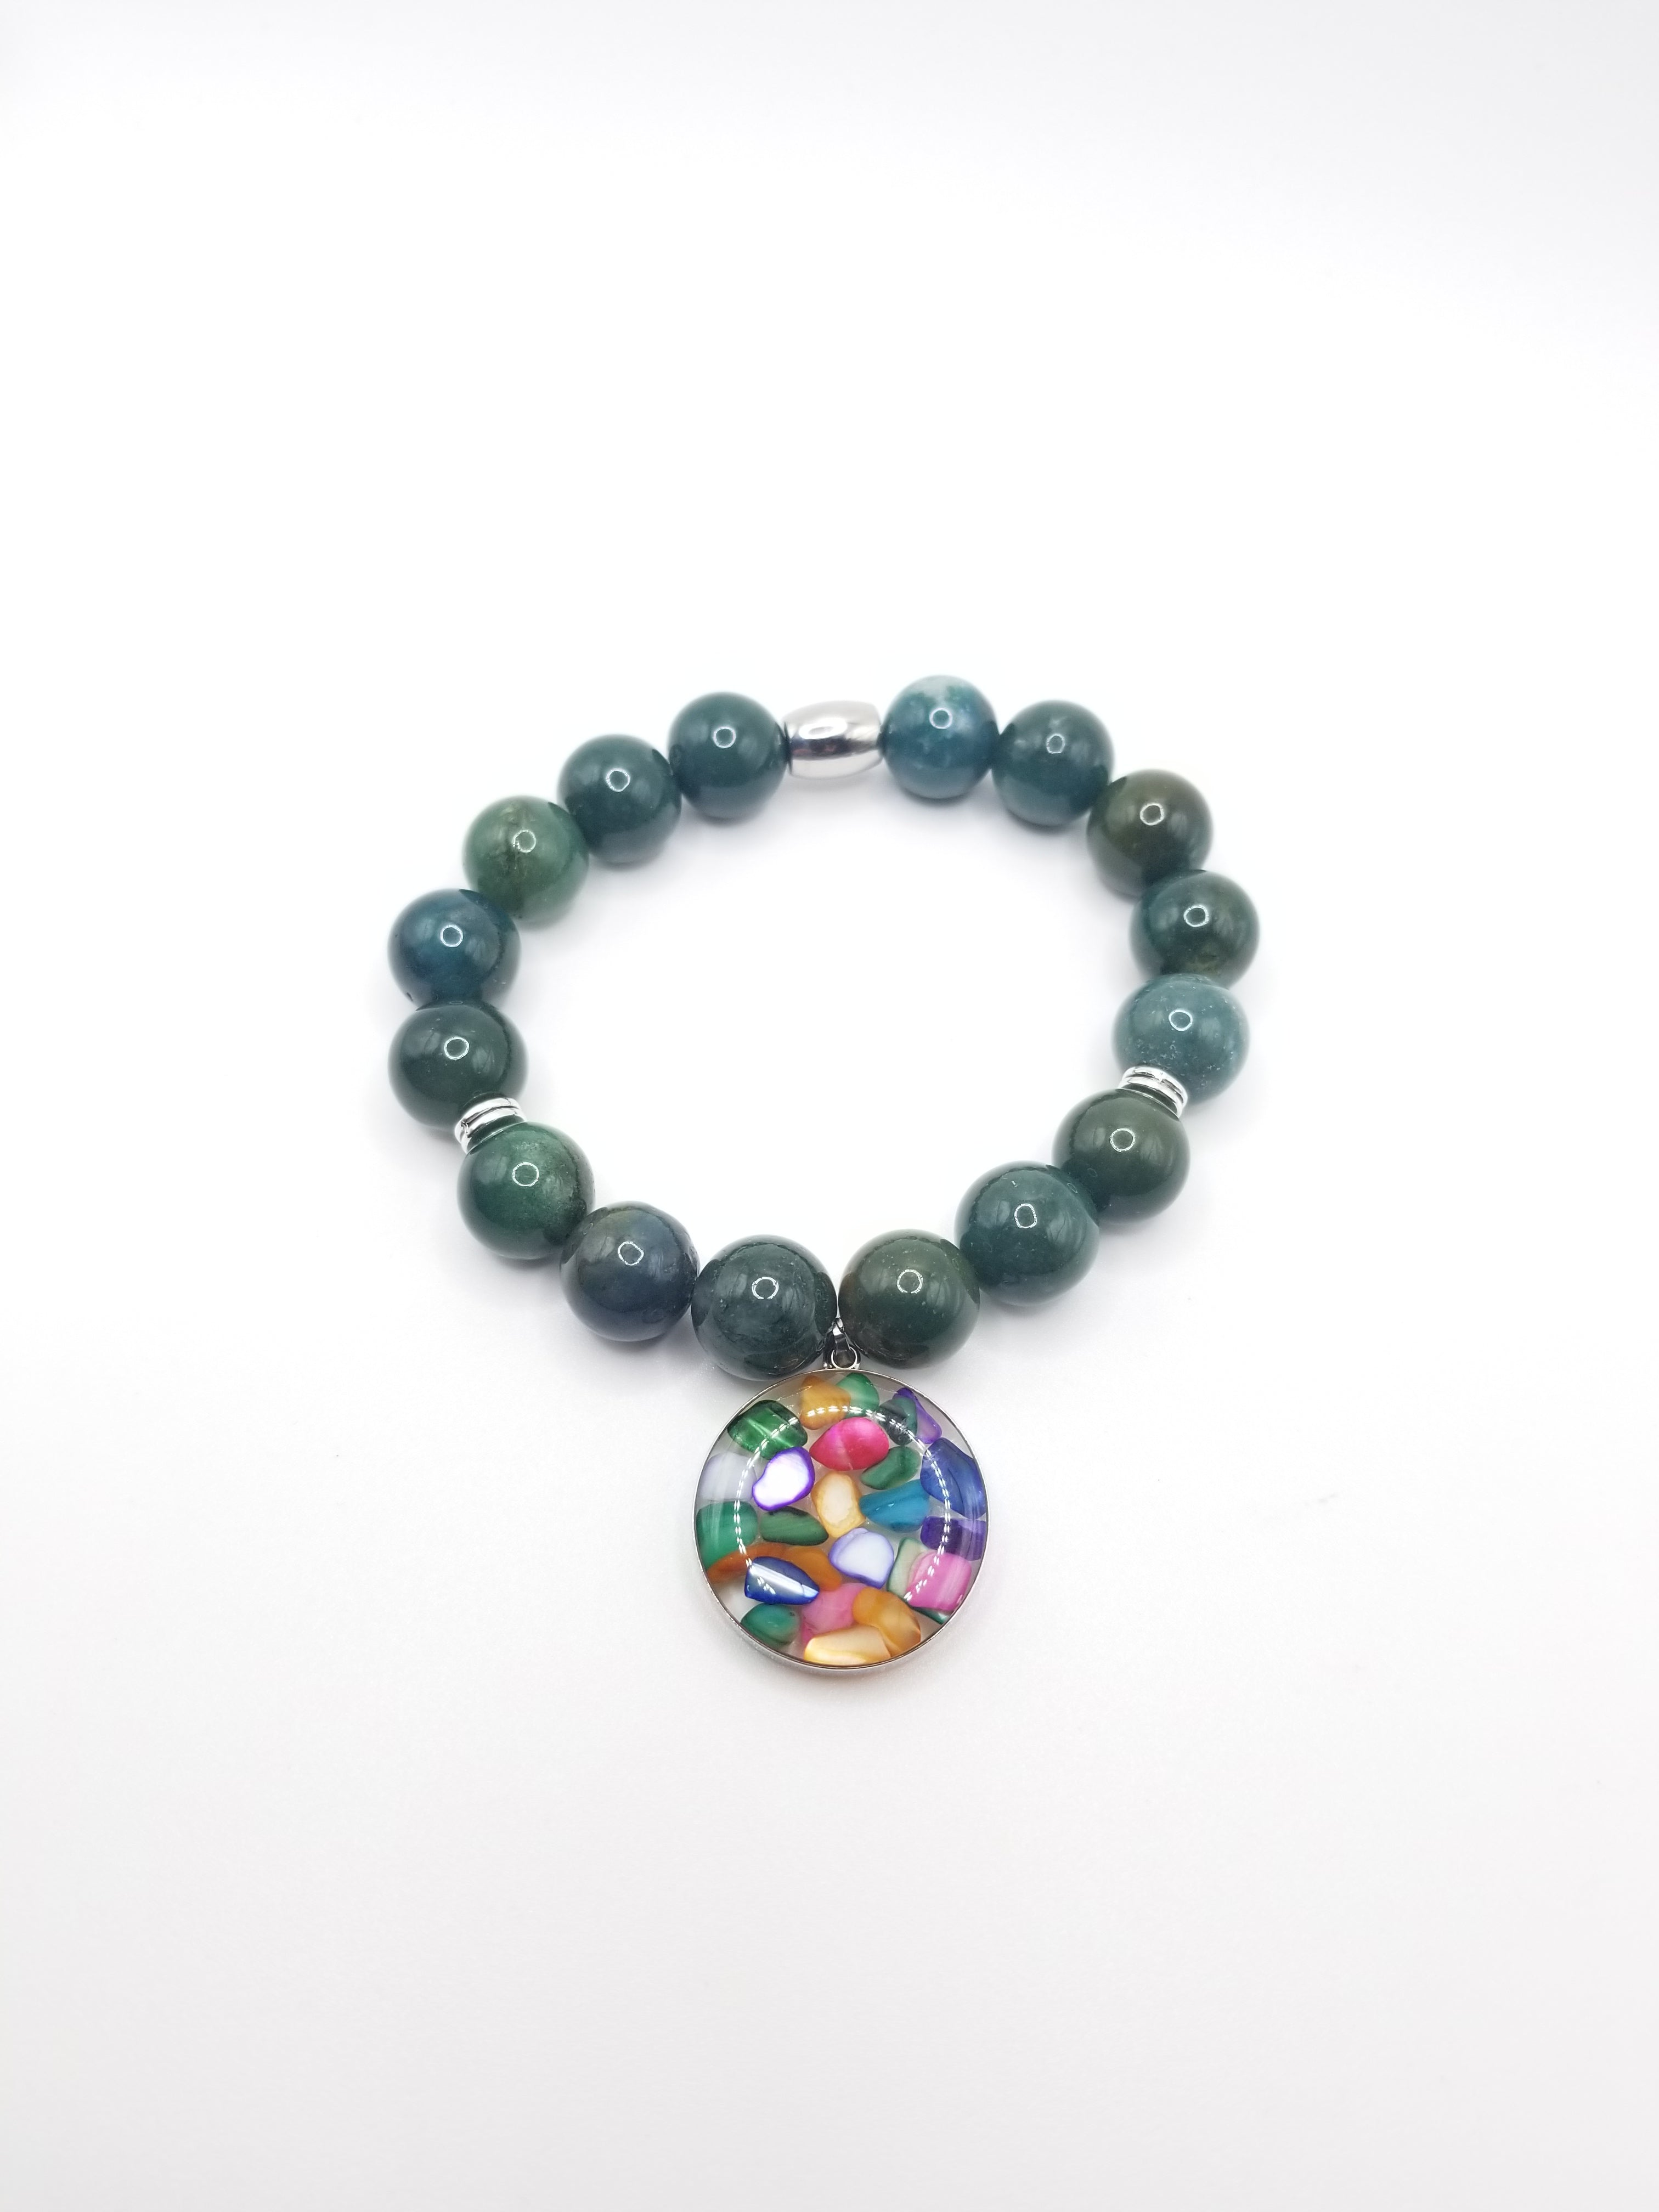 Moss Agate with Decorative Pendant Beaded Bracelet